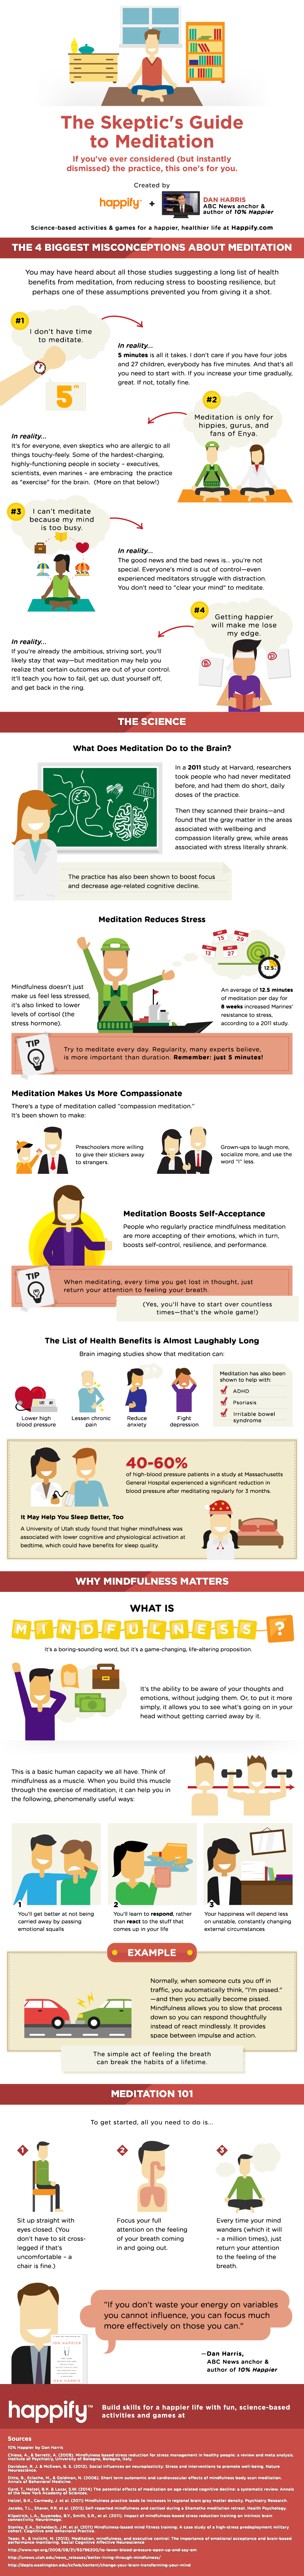 The Skeptic's Guide to Meditation [INFOGRAPHIC] | Creation Meditation